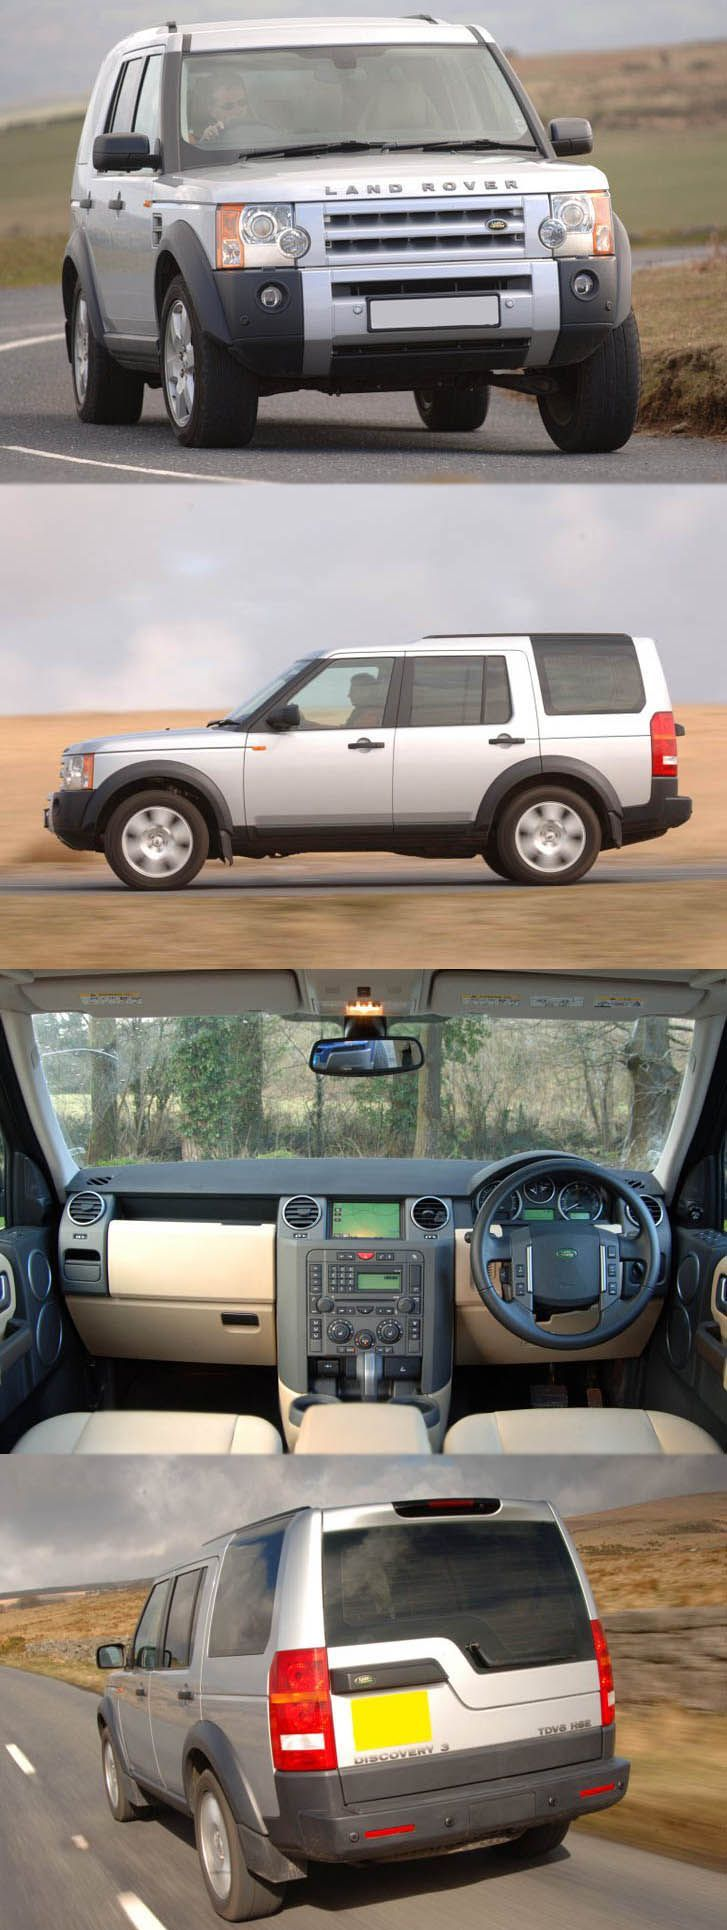 Cool land rover 2017 a review of the used land rover discovery for more detail